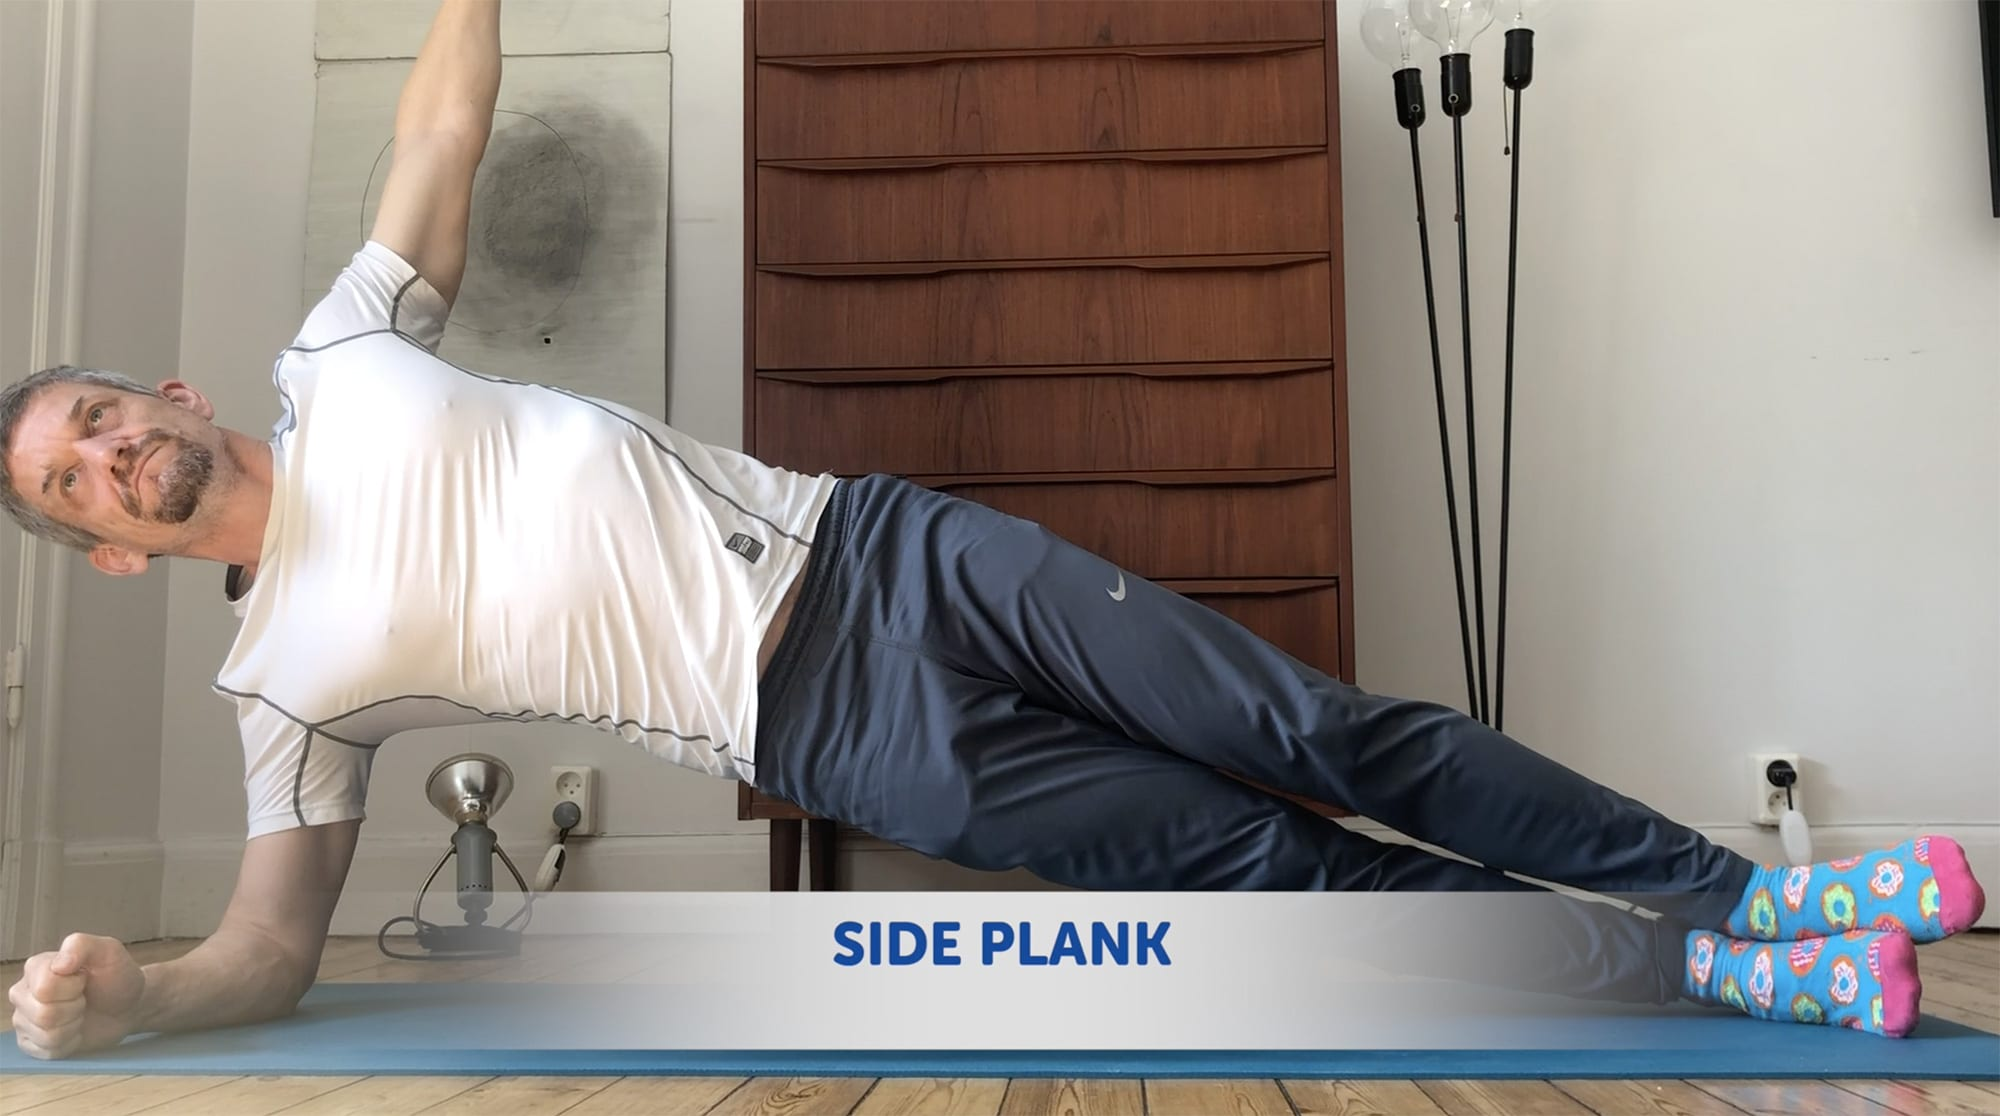 The Side Plank comes at it from a different angle